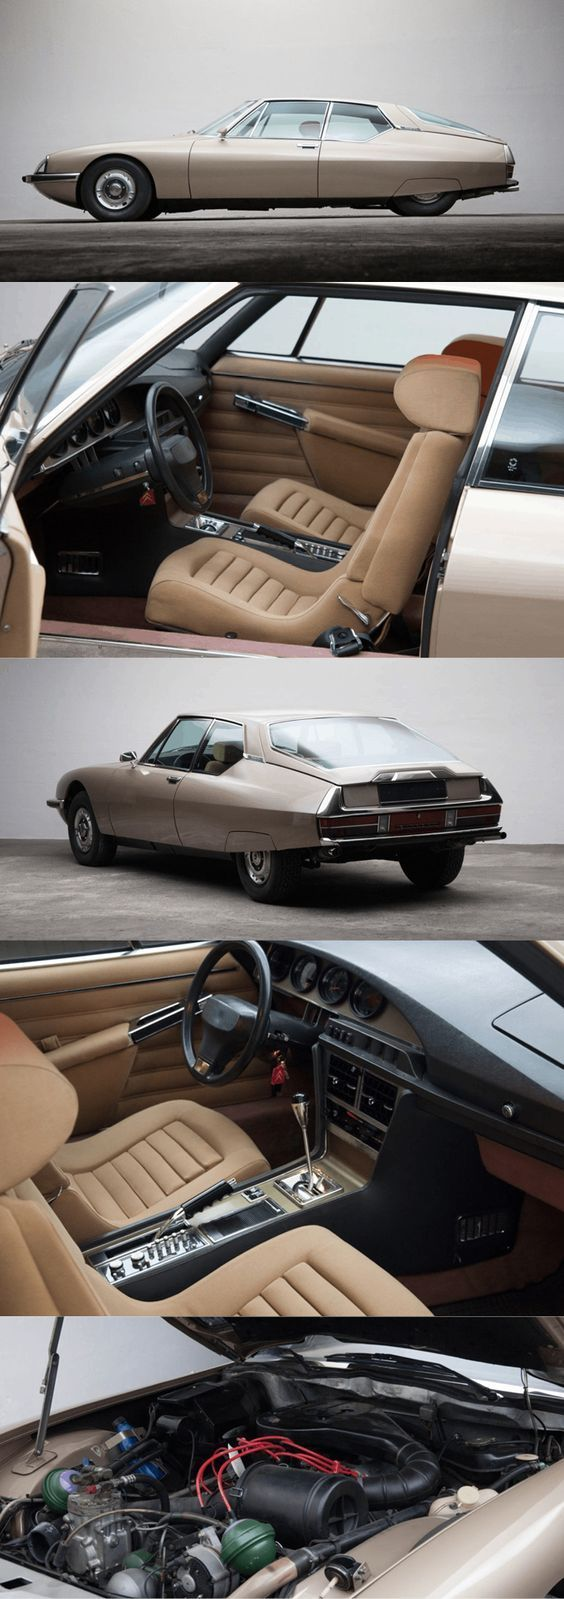 CITROËN SM Year 1971. Magnificent restoration of a Citroën SM, realized … # CITROËN #a …